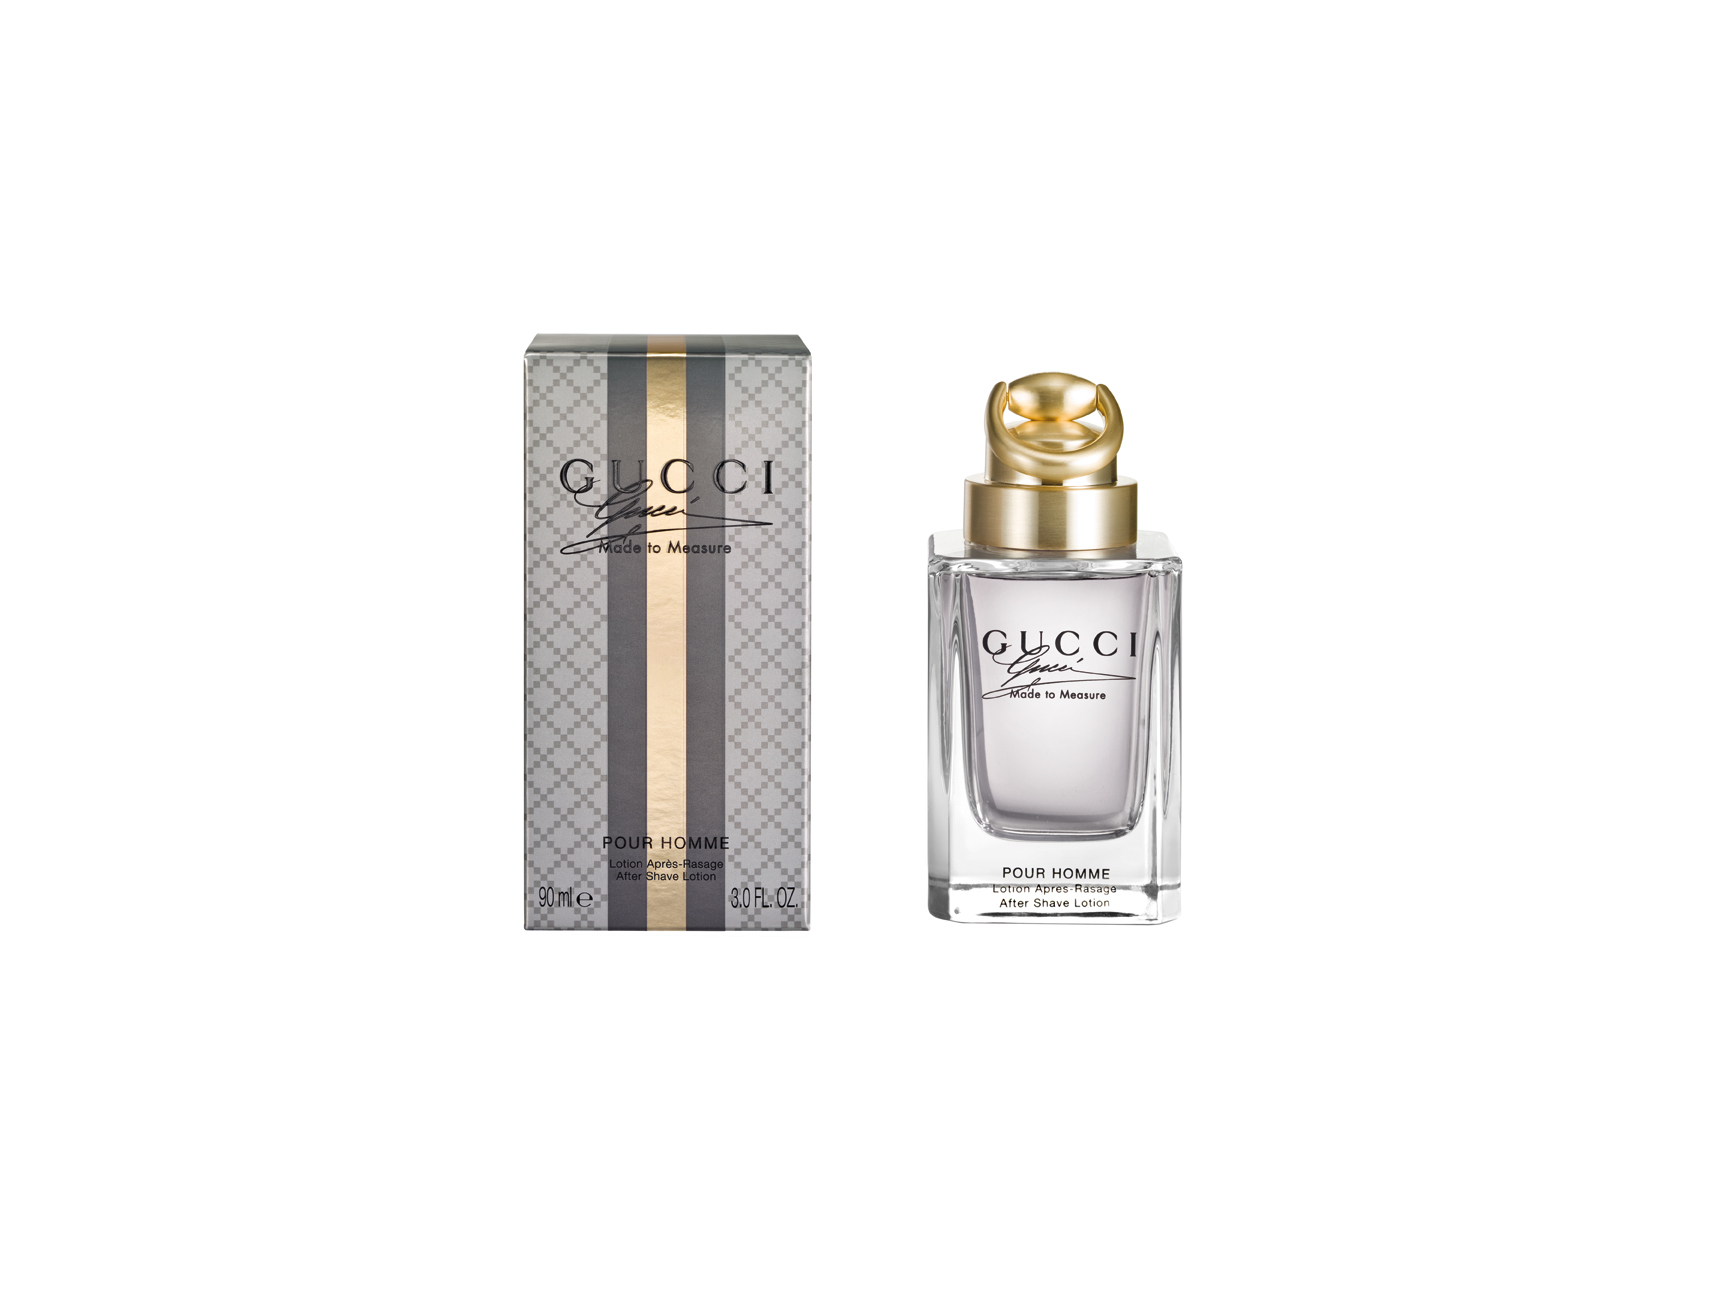 Gucci By Made To Measure After Shave Lotion 90ml Beauty Line Narciso Rodriquez For Women Edp Picture Of